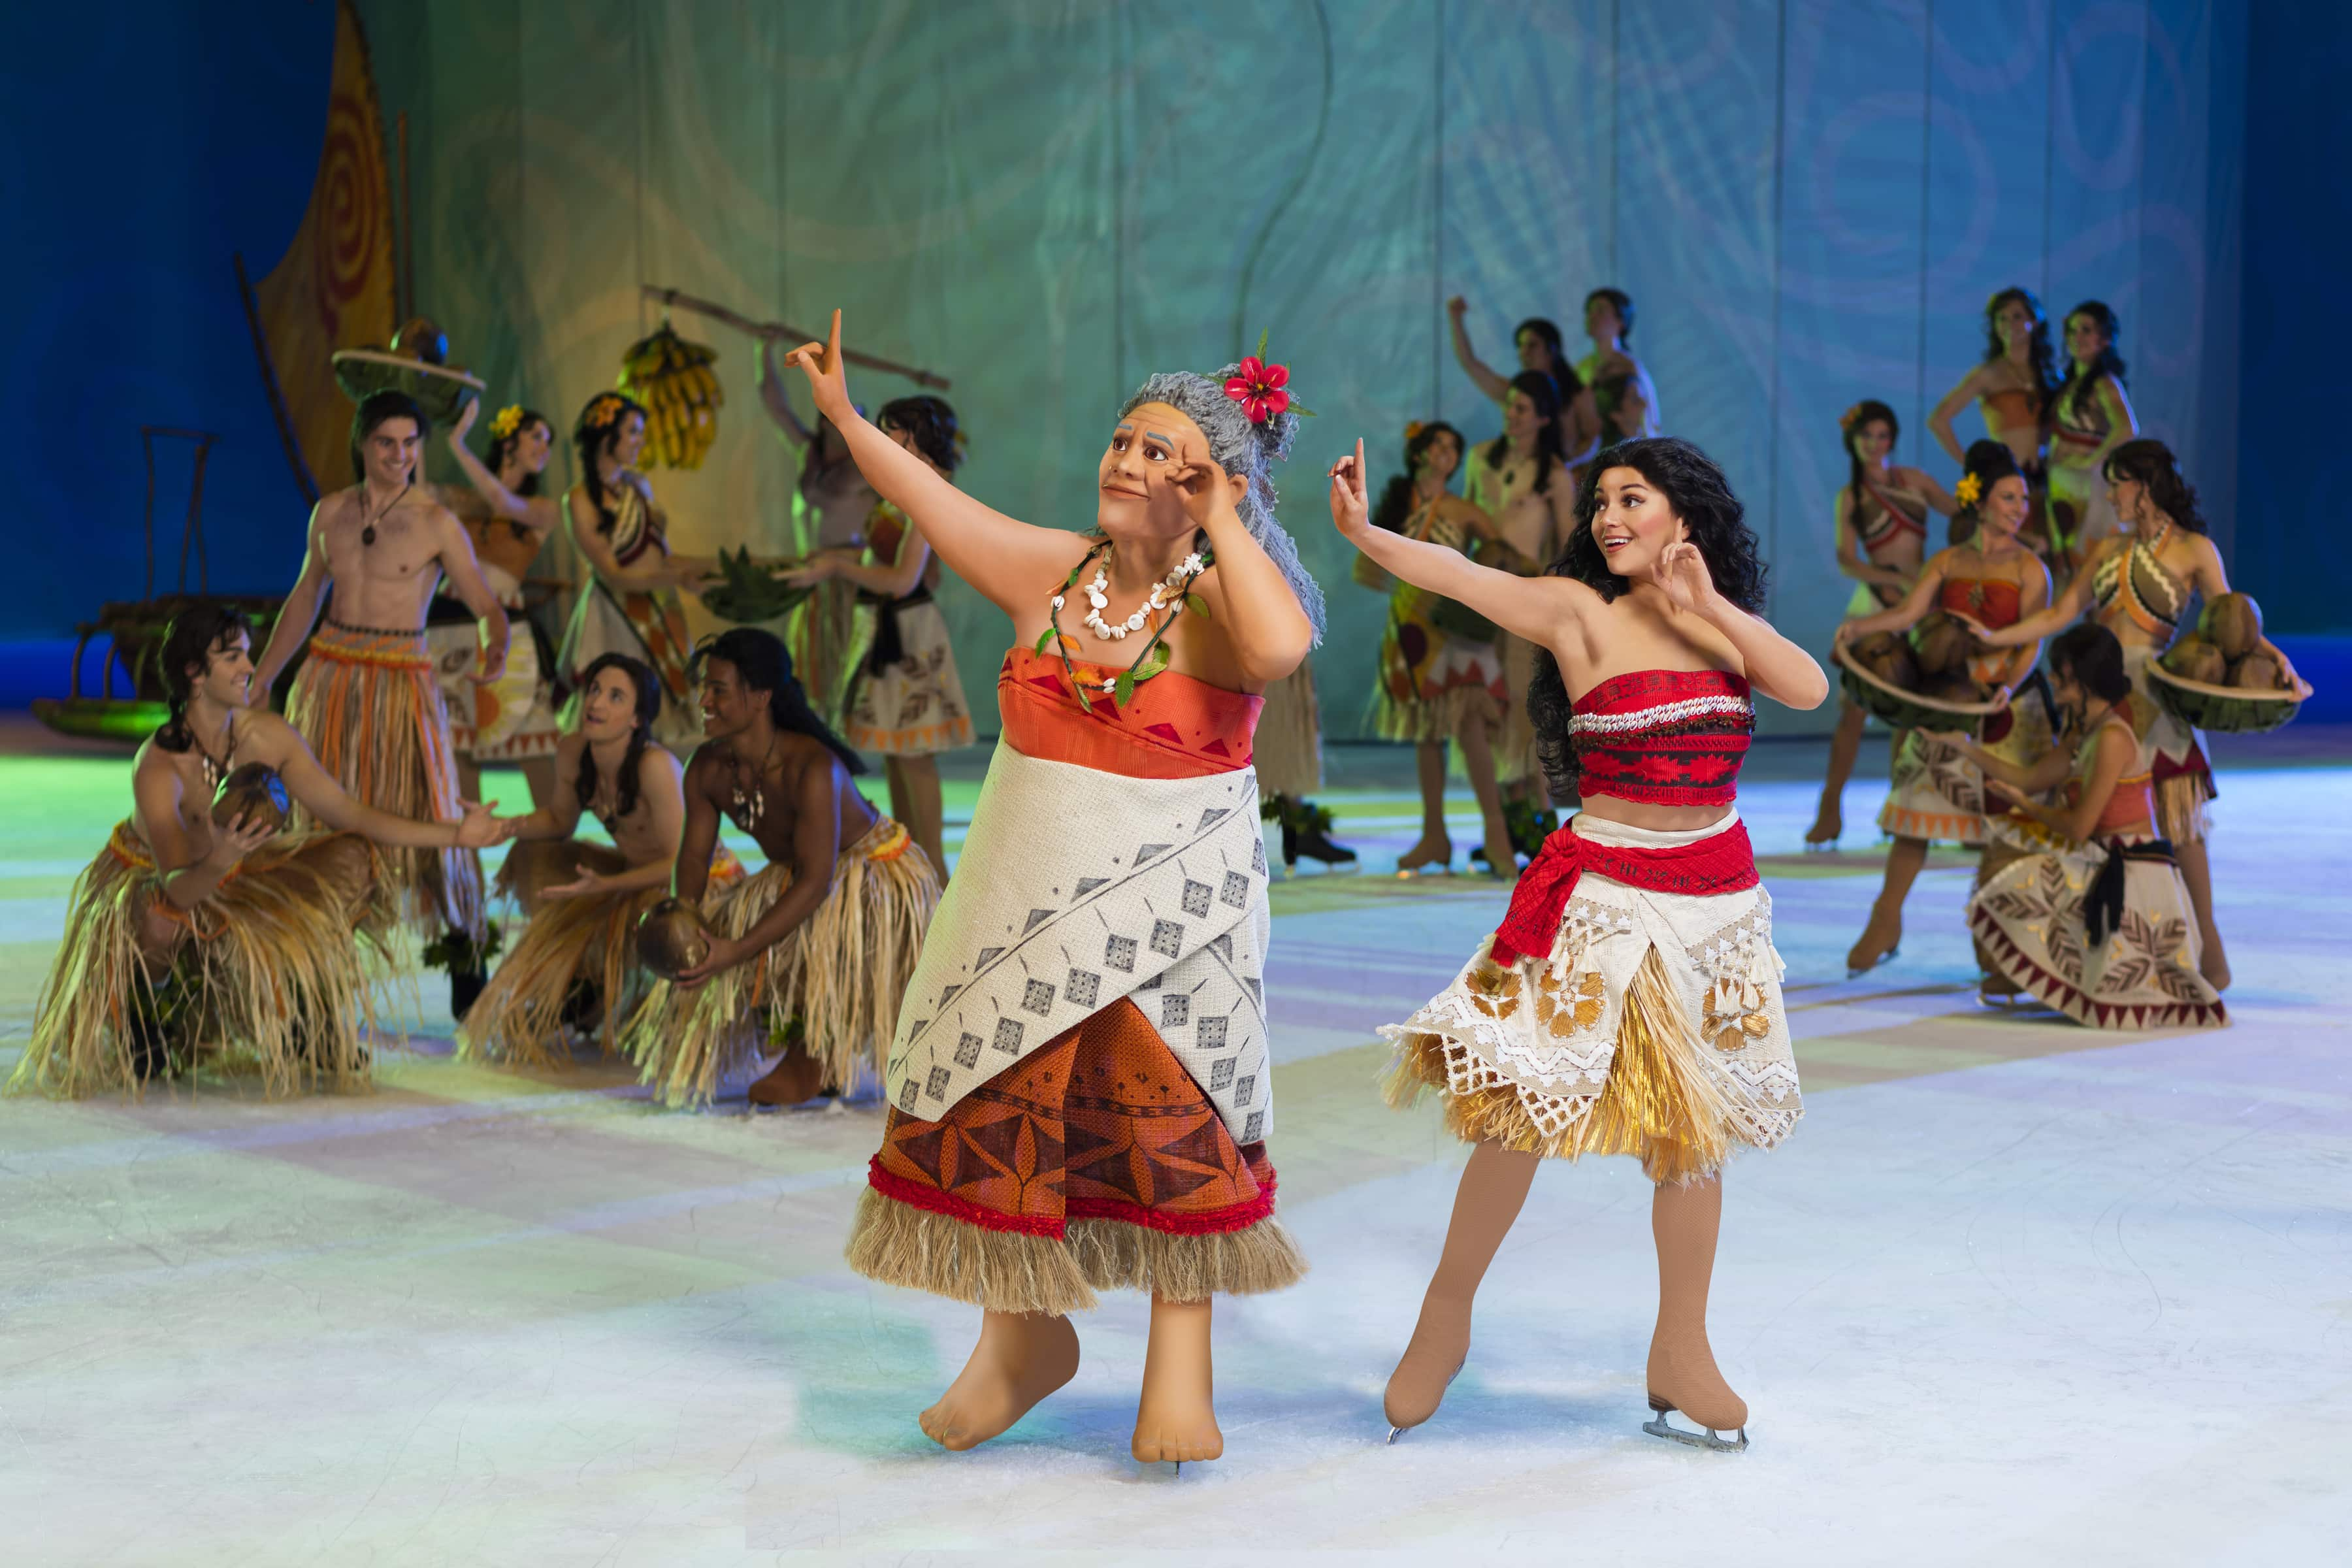 Moana in Disney on Ice's Dare to Dream Show